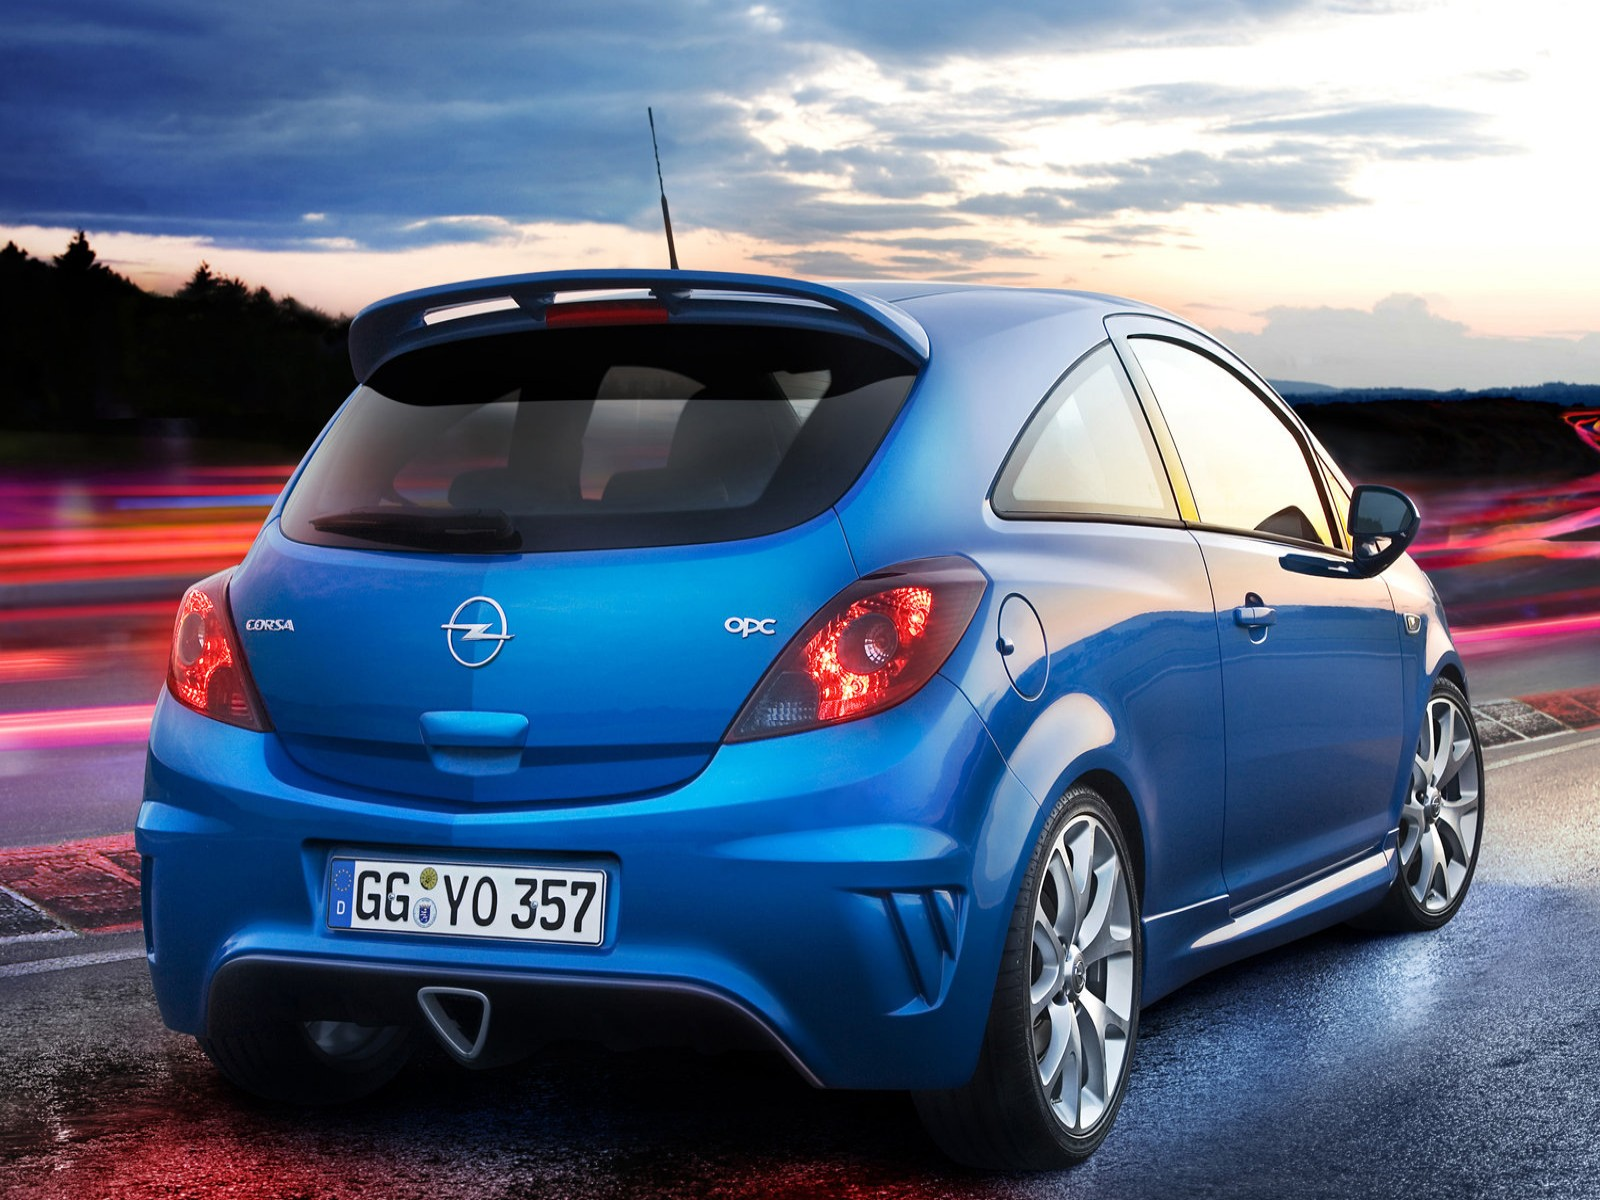 car pictures opel corsa opc 2008. Black Bedroom Furniture Sets. Home Design Ideas